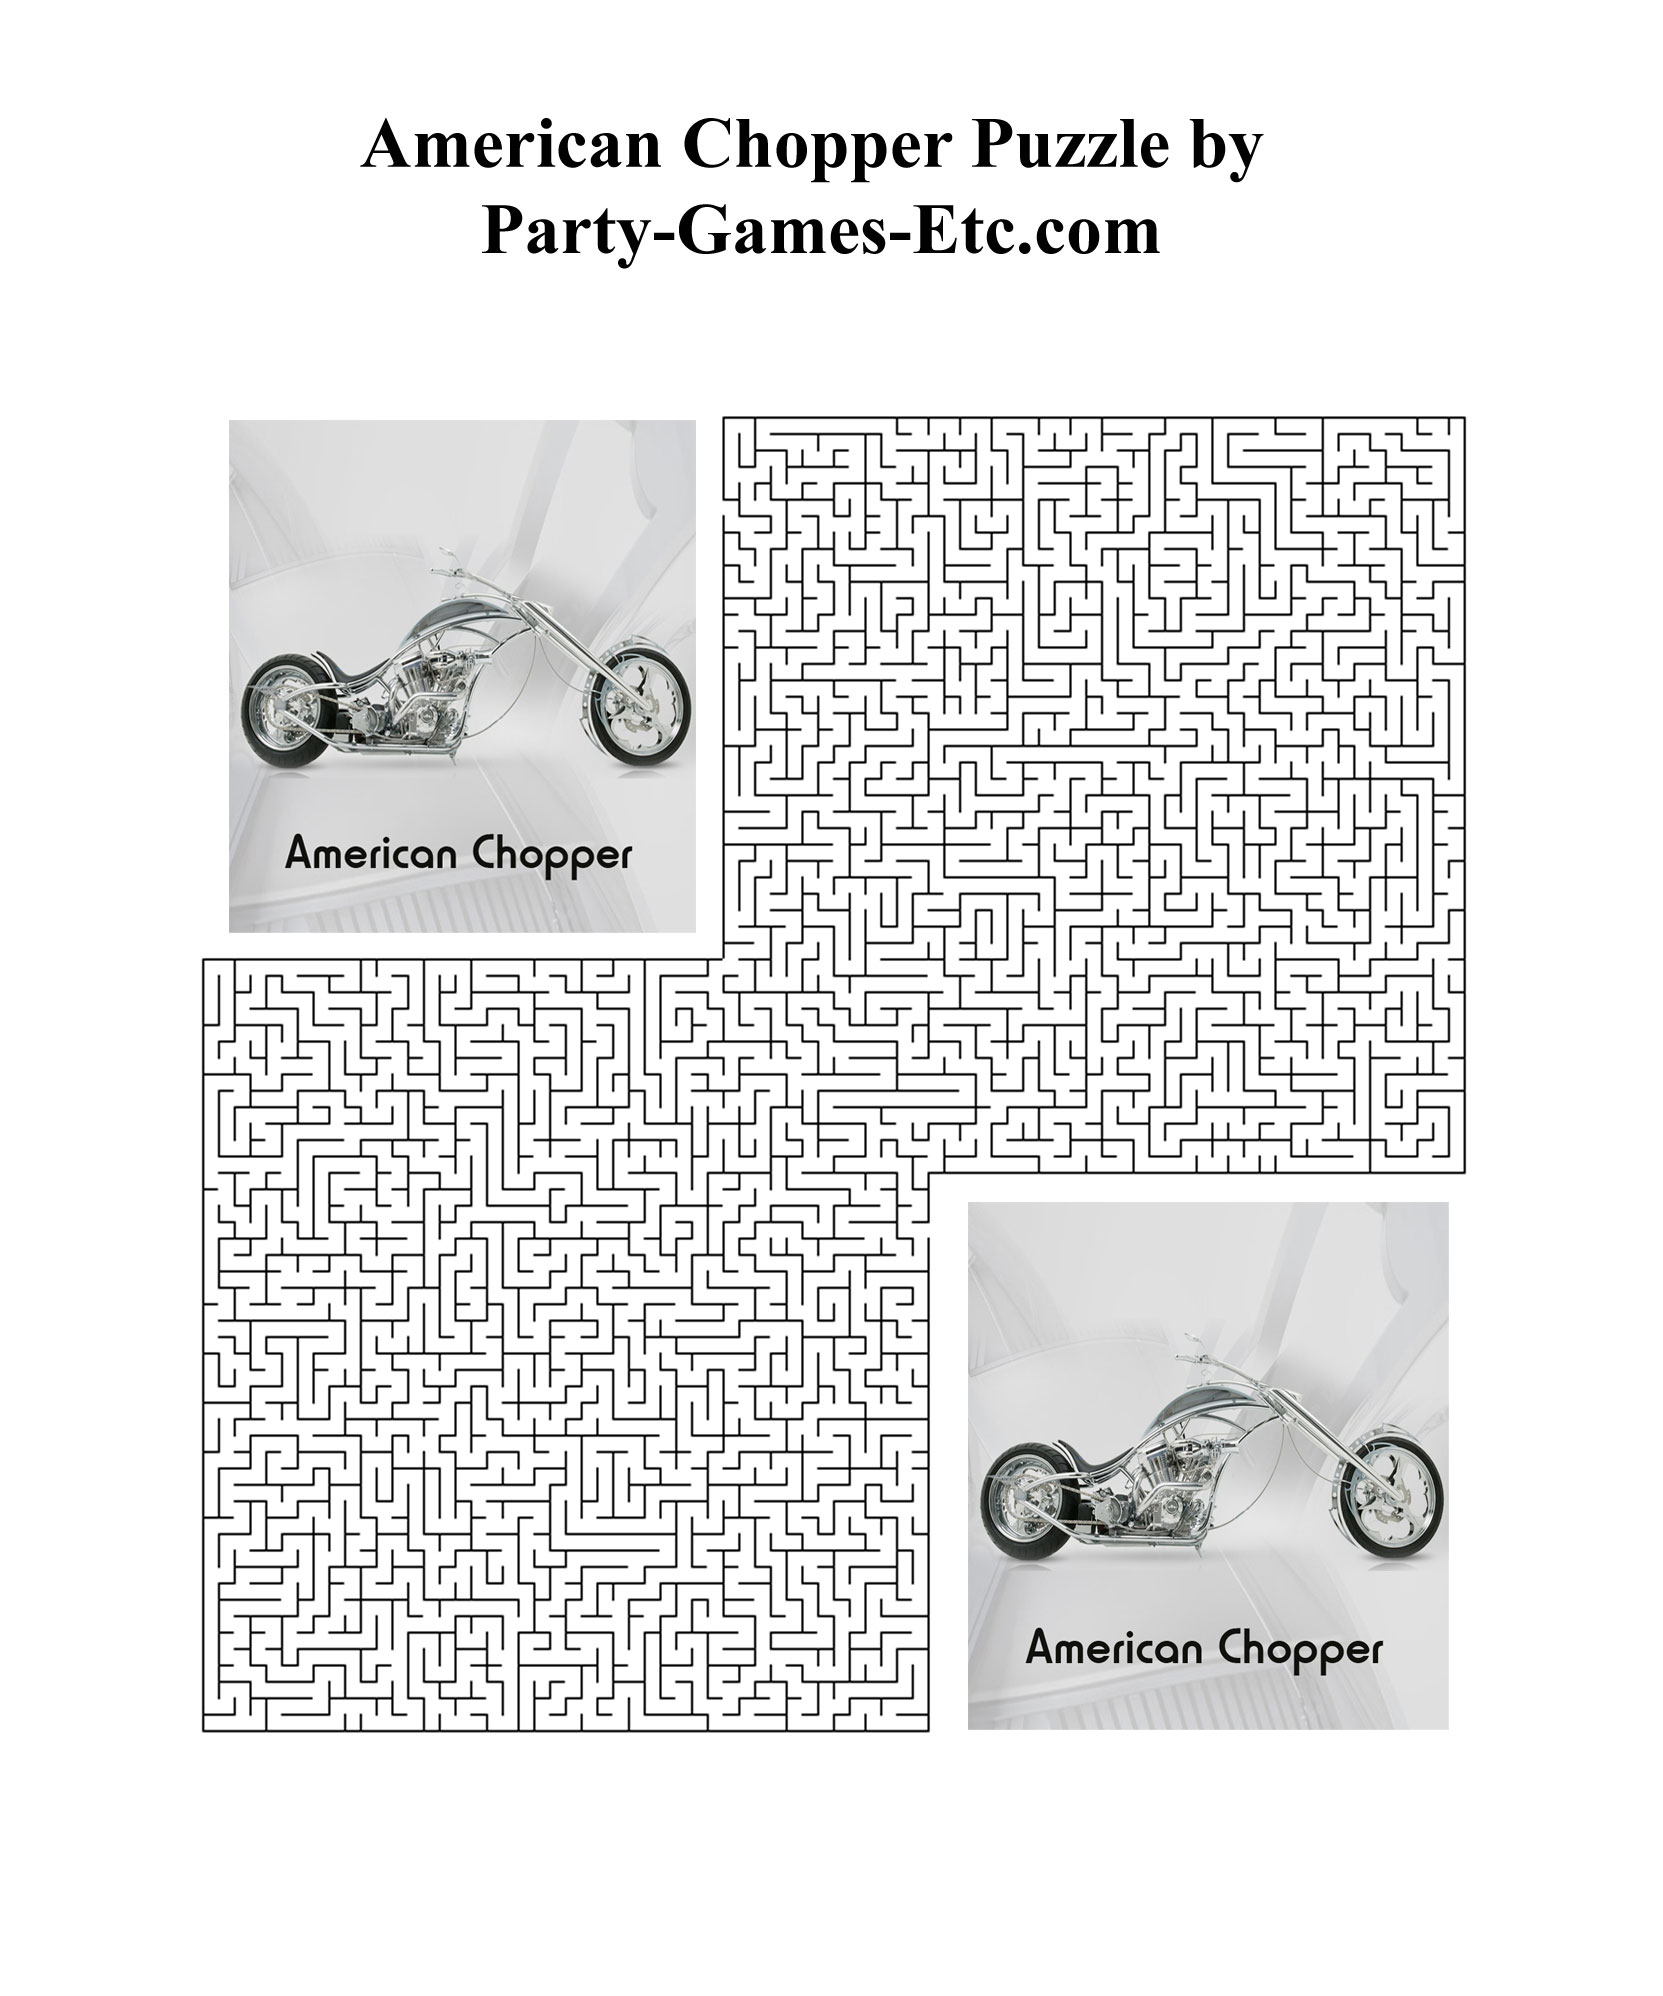 Free Printable American Chopper Party Game and Pen and Paper Activity